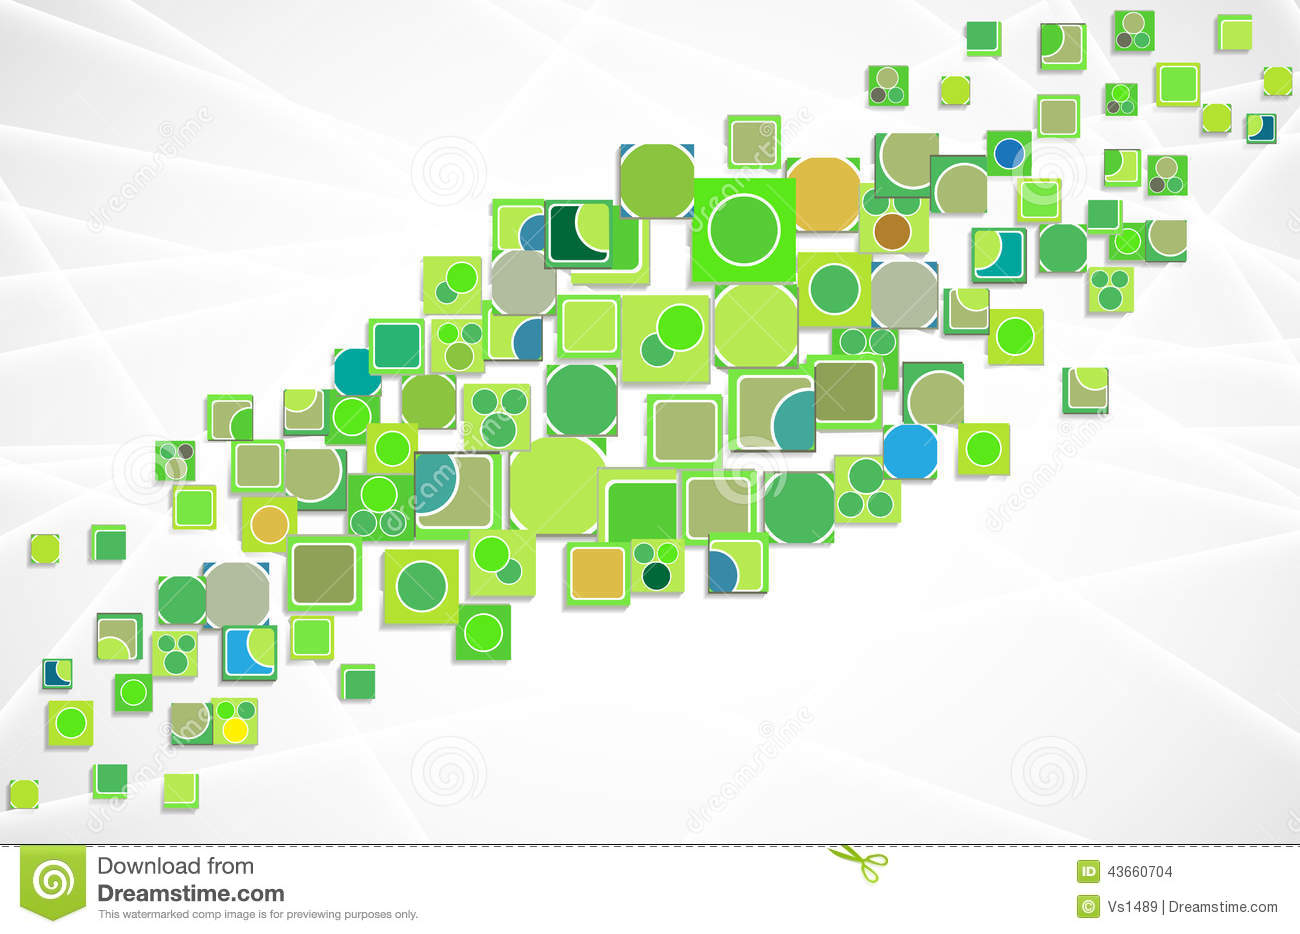 Free Vectors Vector Technology Background: Green Ecology Innovation Computer Technology Vector